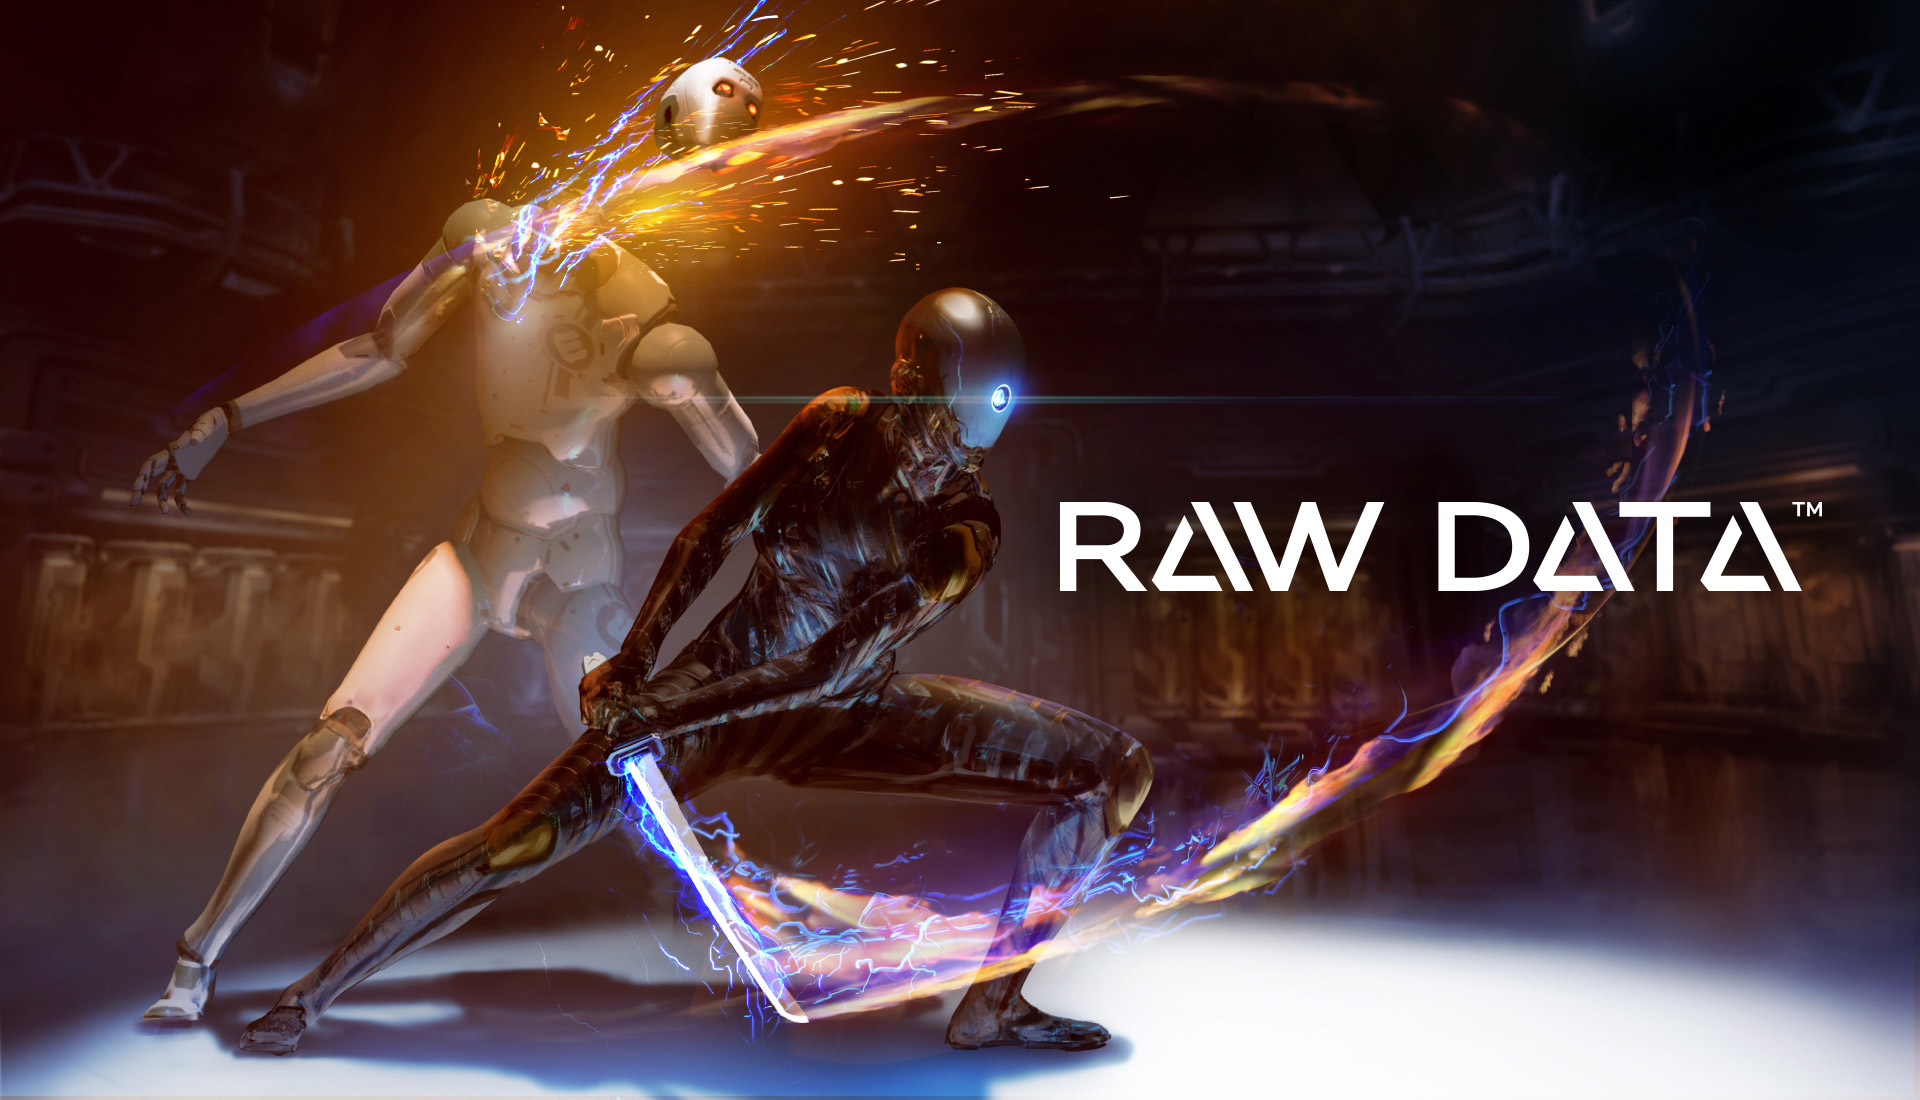 Raw Data virtual reality game